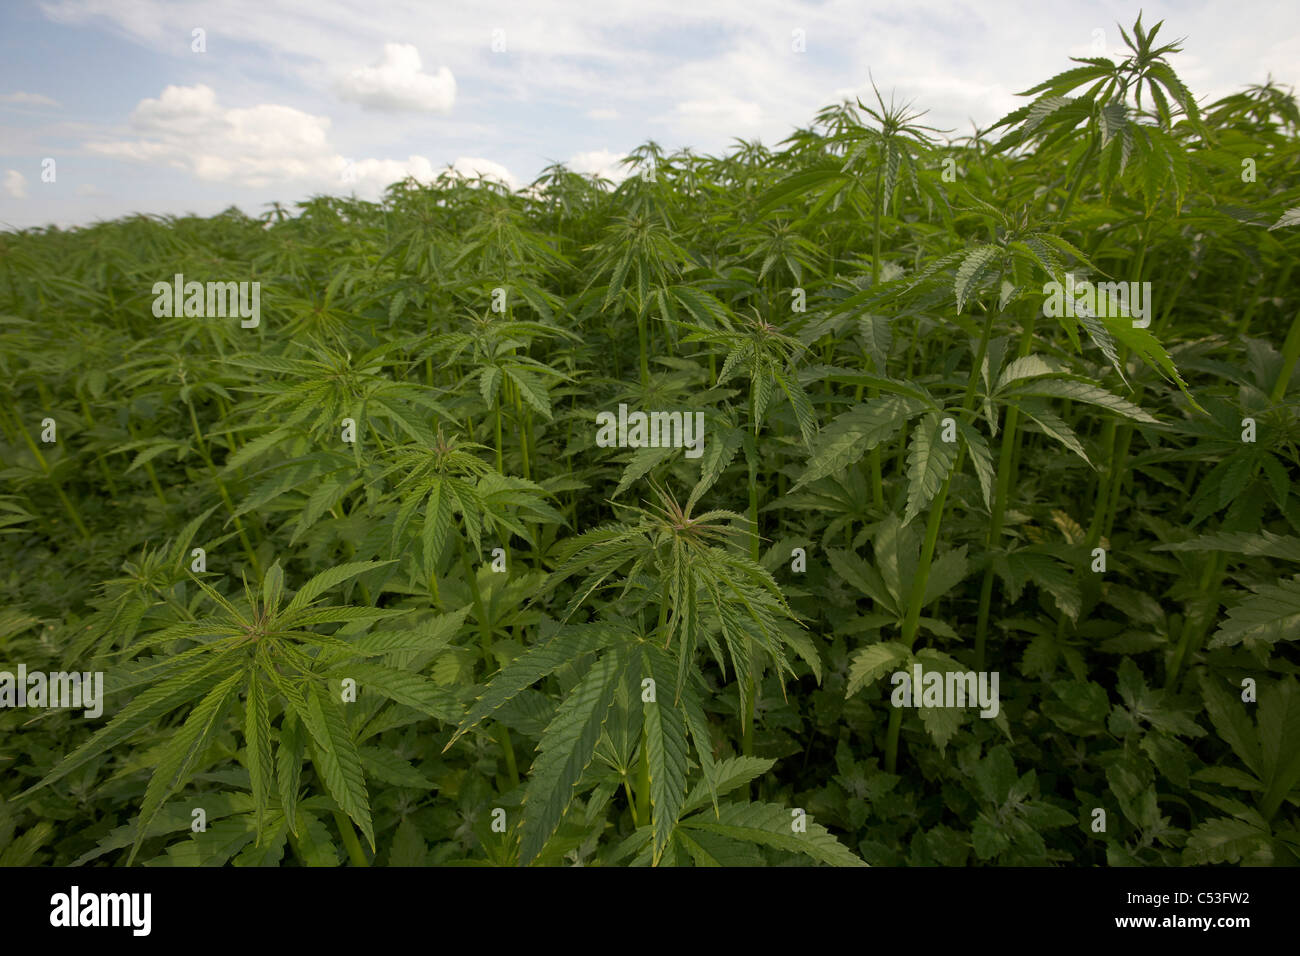 Commercial Hemp Crop Growing In East Yorkshire Uk Field Of Cannabis Stock Photo Alamy